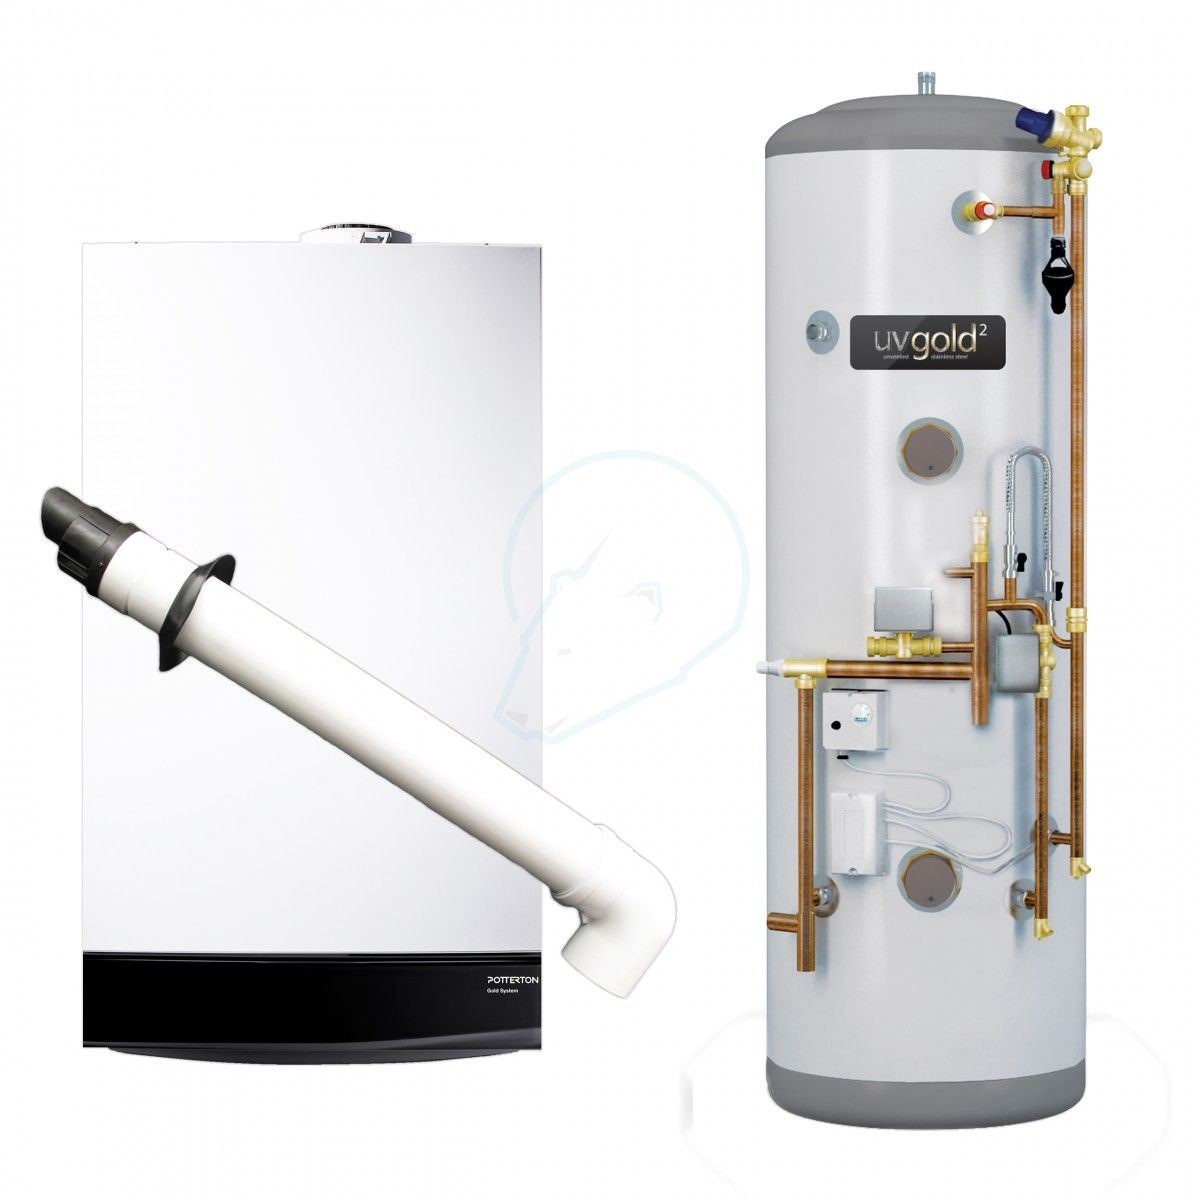 Megaflo unvented cylinder wiring diagram kitchenaid ice maker wiring megaflo unvented cylinder wiring diagram megaflo unvented cylinder wiring diagram asfbconference2016 Choice Image